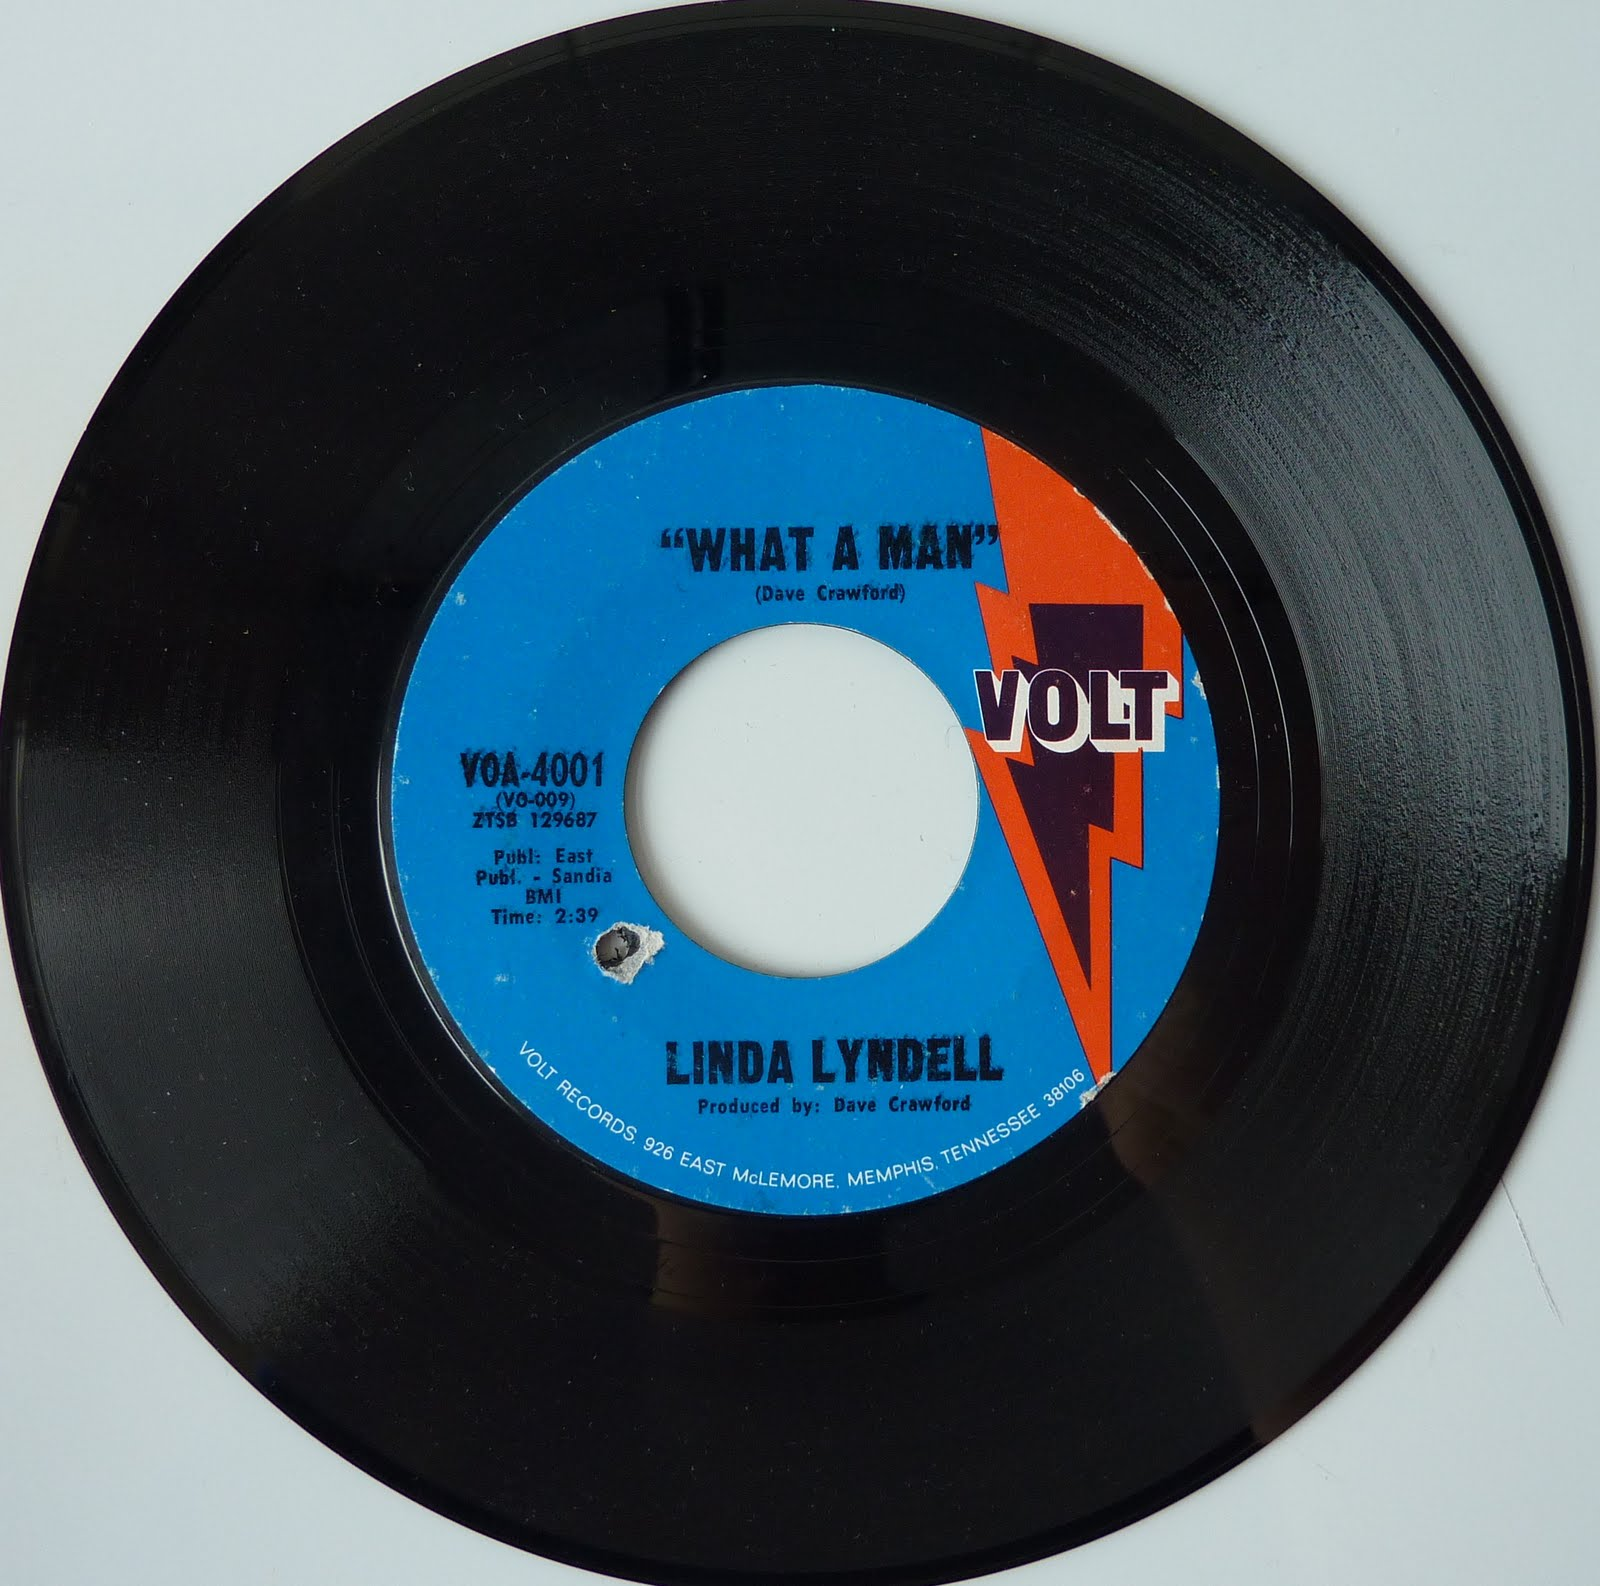 lyndell big and beautiful singles In 1991, i didn't even have a cd player but i well remember the significance of the the nine cd set, the complete stax/volt singles: 1959-1968 certainly i and others were already aware of the.